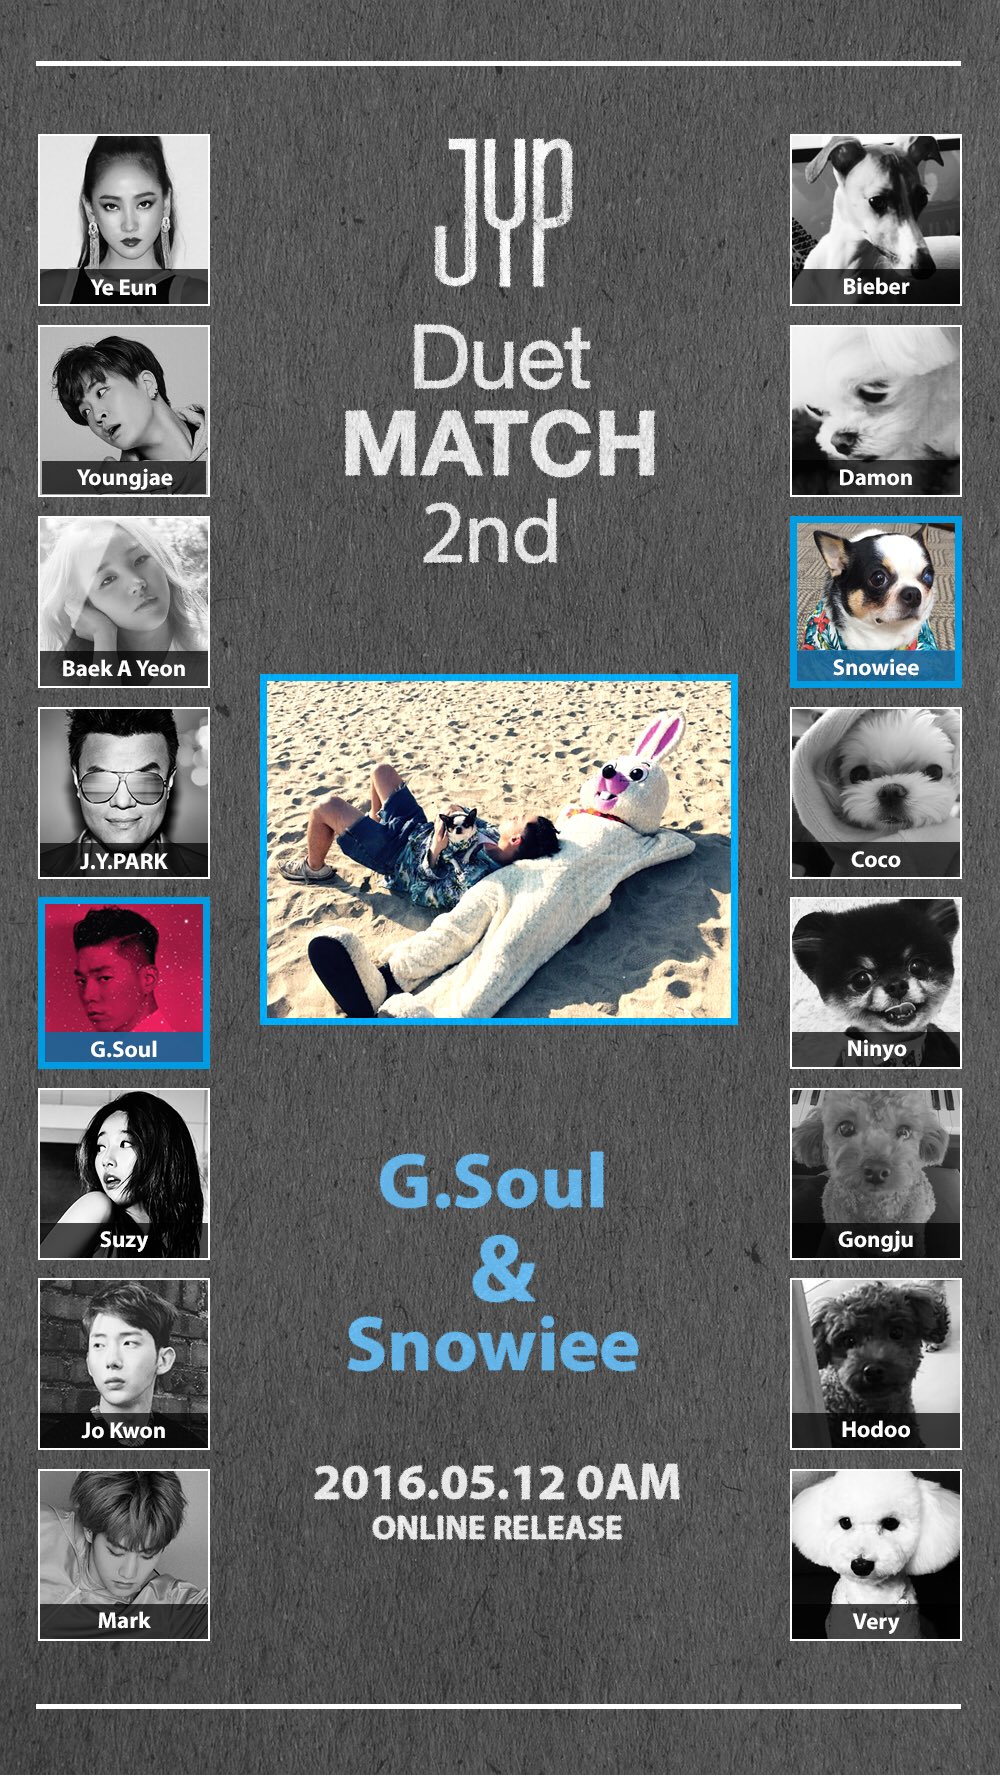 Update: JYP Entertainment Announces 2nd Duet Will Feature G.Soul And His Pet Dog Snowiee